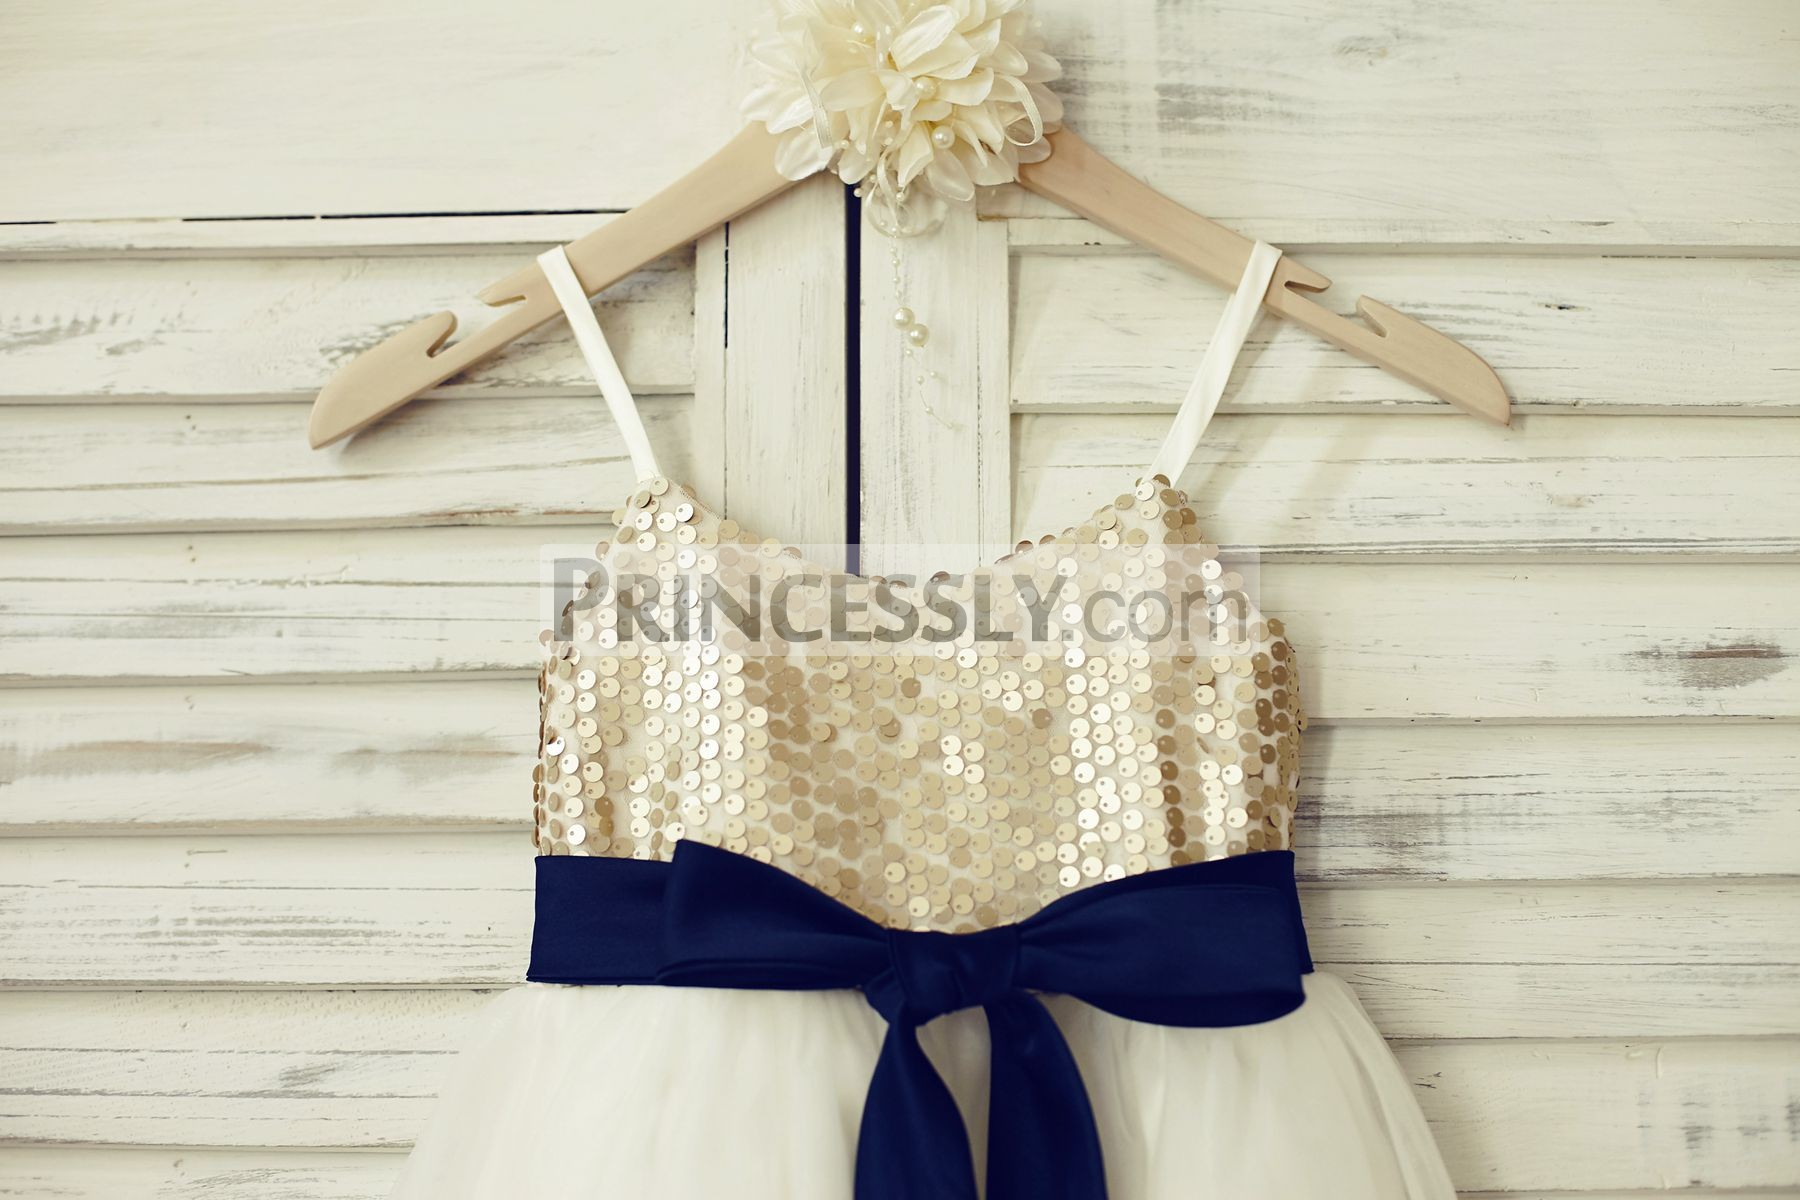 Spaghetti straps champagne sequins bodice with navy blue sash